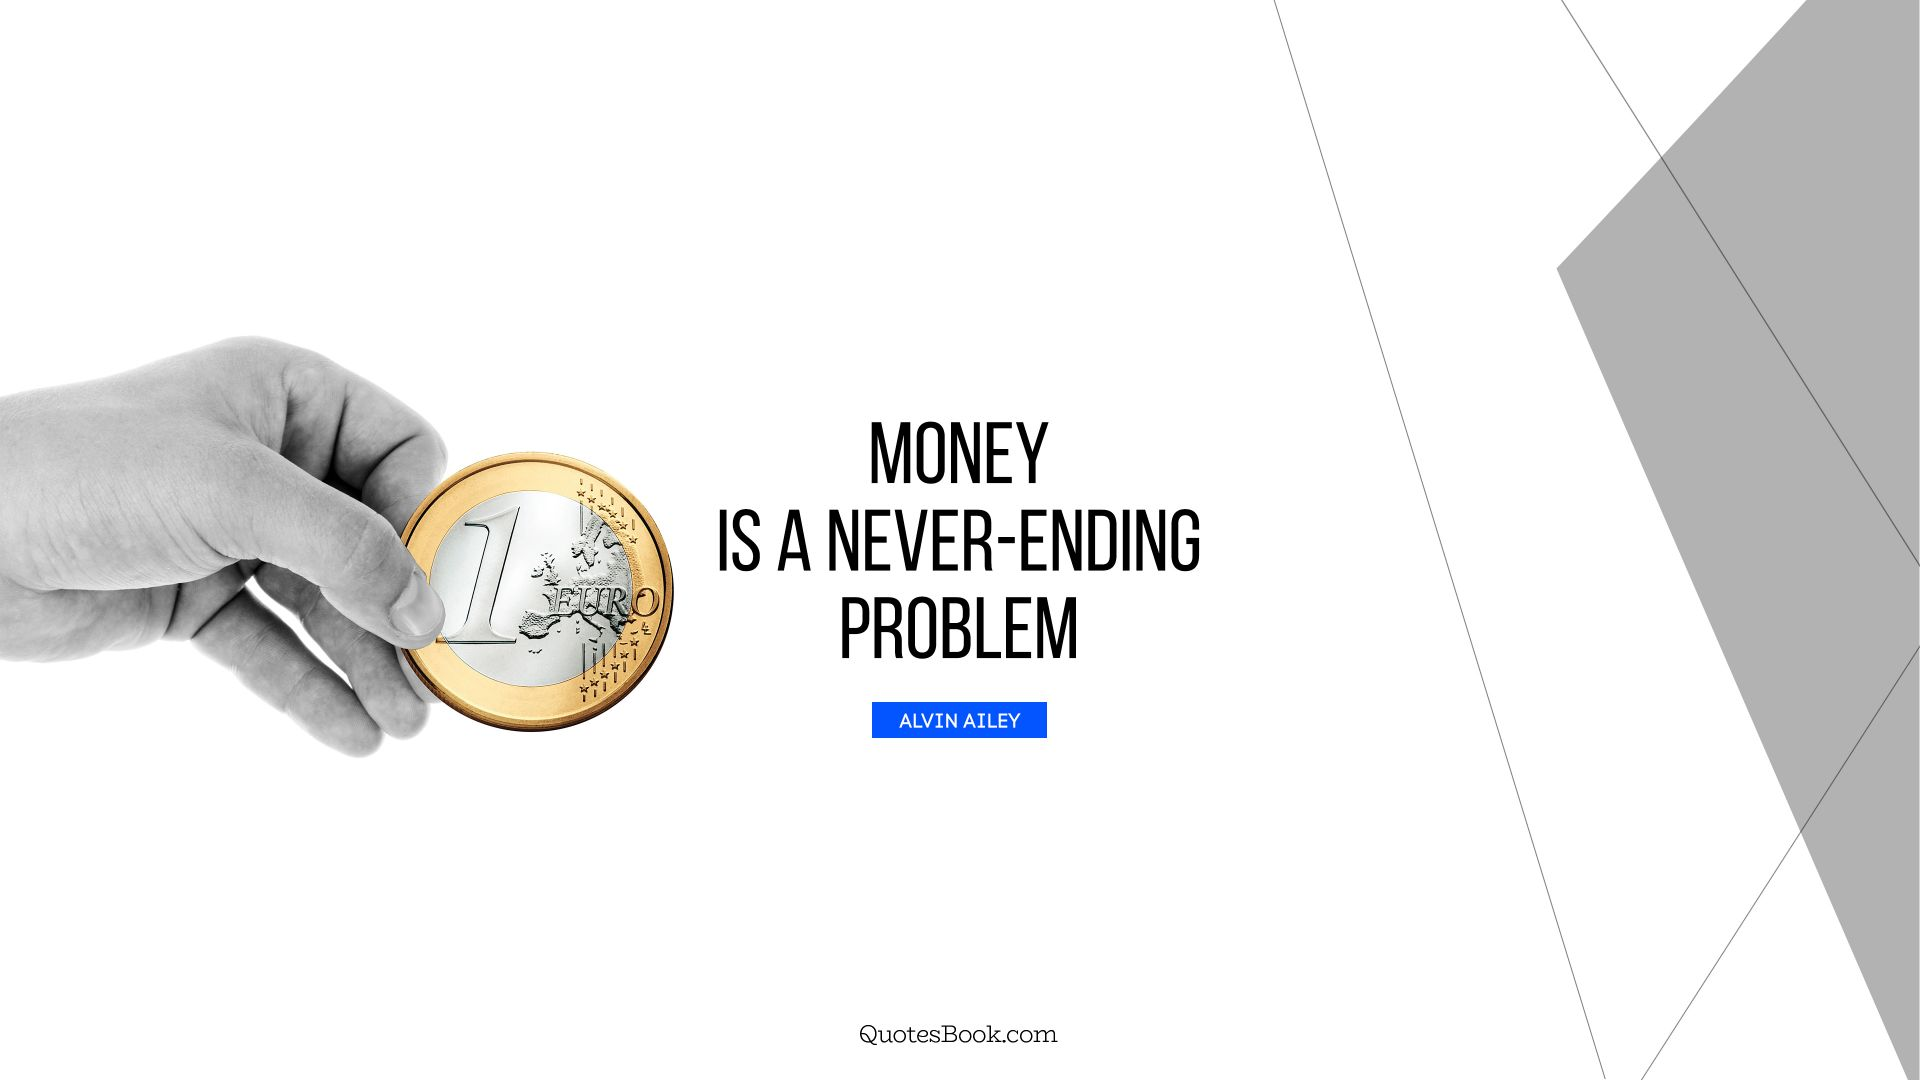 Money is a never-ending problem. - Quote by Alvin Ailey